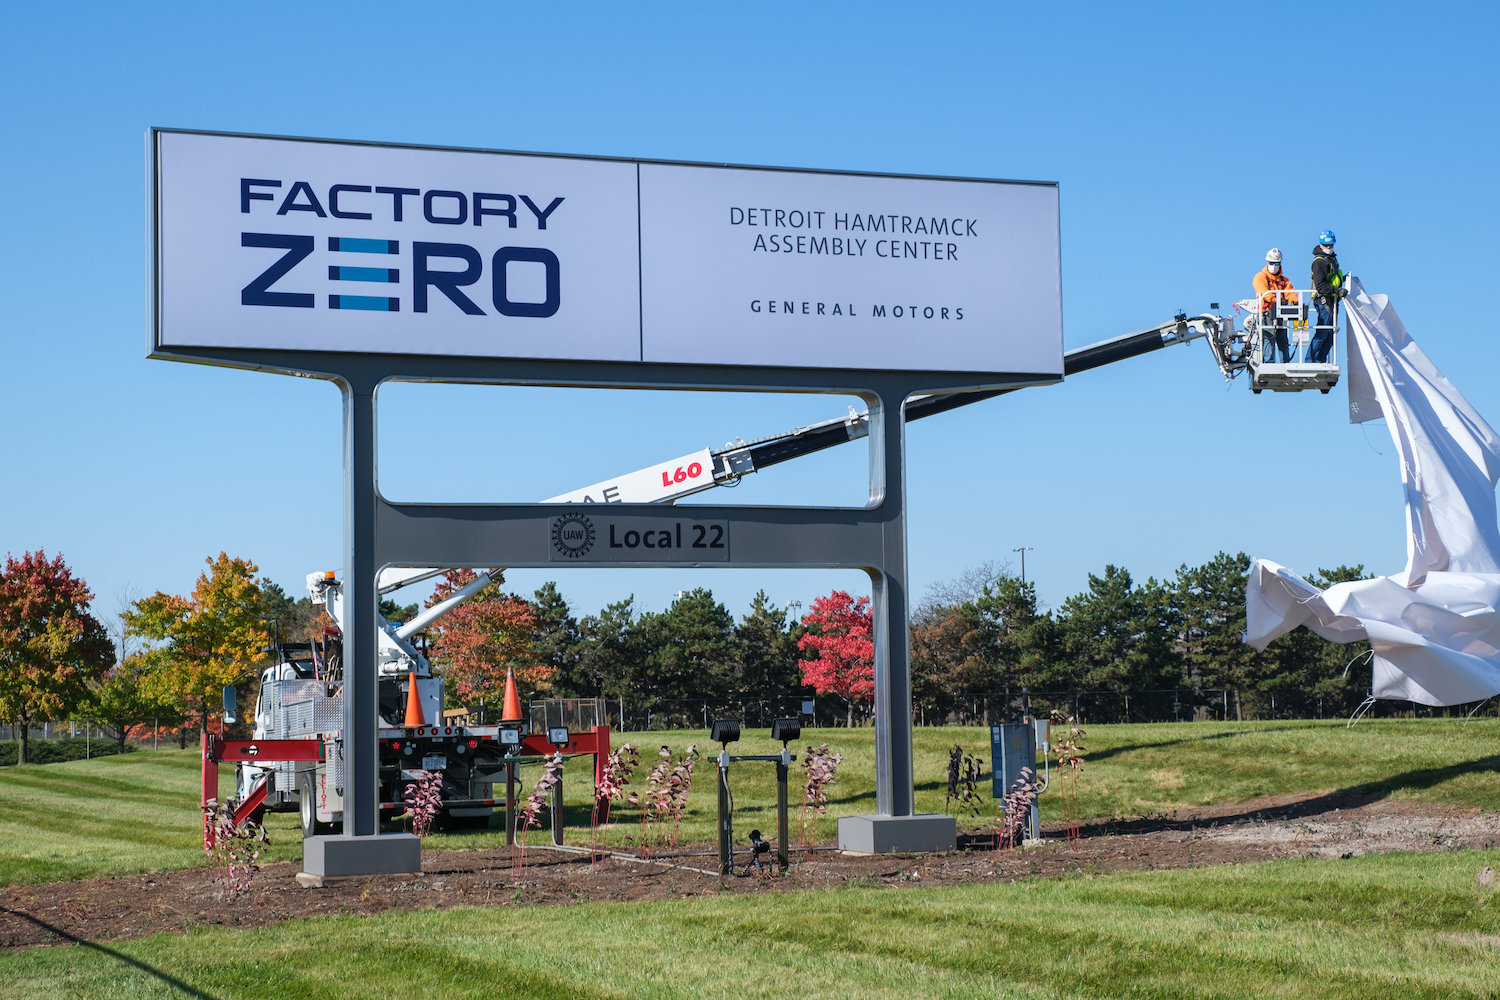 GM Factory Zero is the home of the GMC Hummer EV and the upcoming Chevrolet SIlverado EV electric vehicles